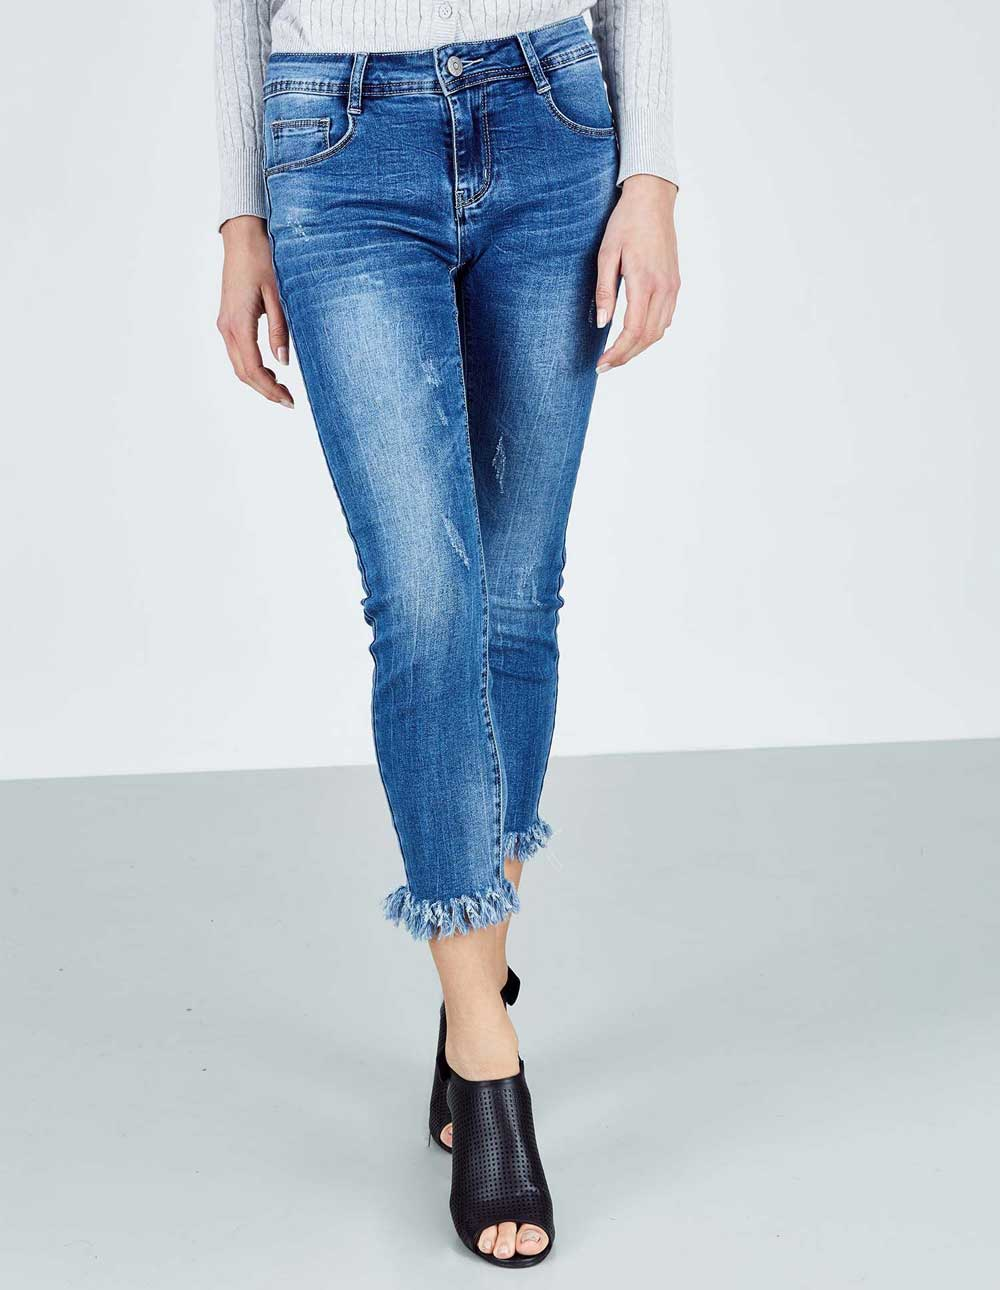 Piazza Italia spring summer 2018 jeans